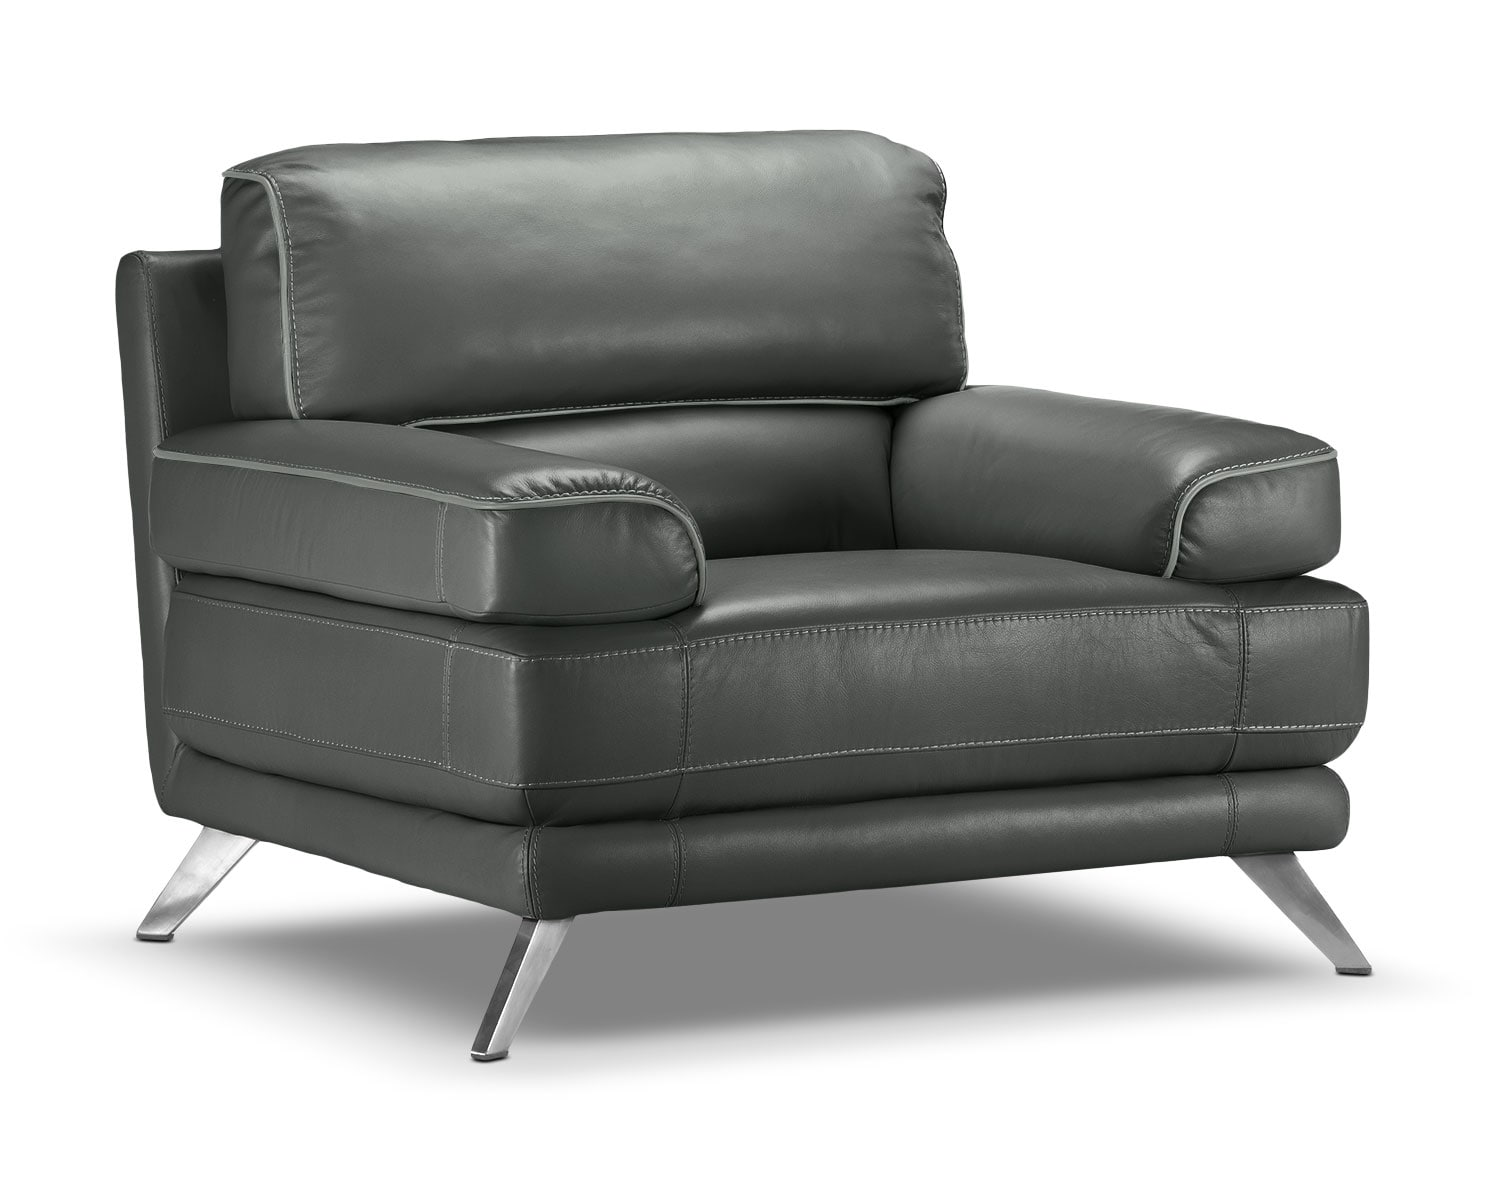 Living Room Furniture - Sutton Chair - Charcoal Grey